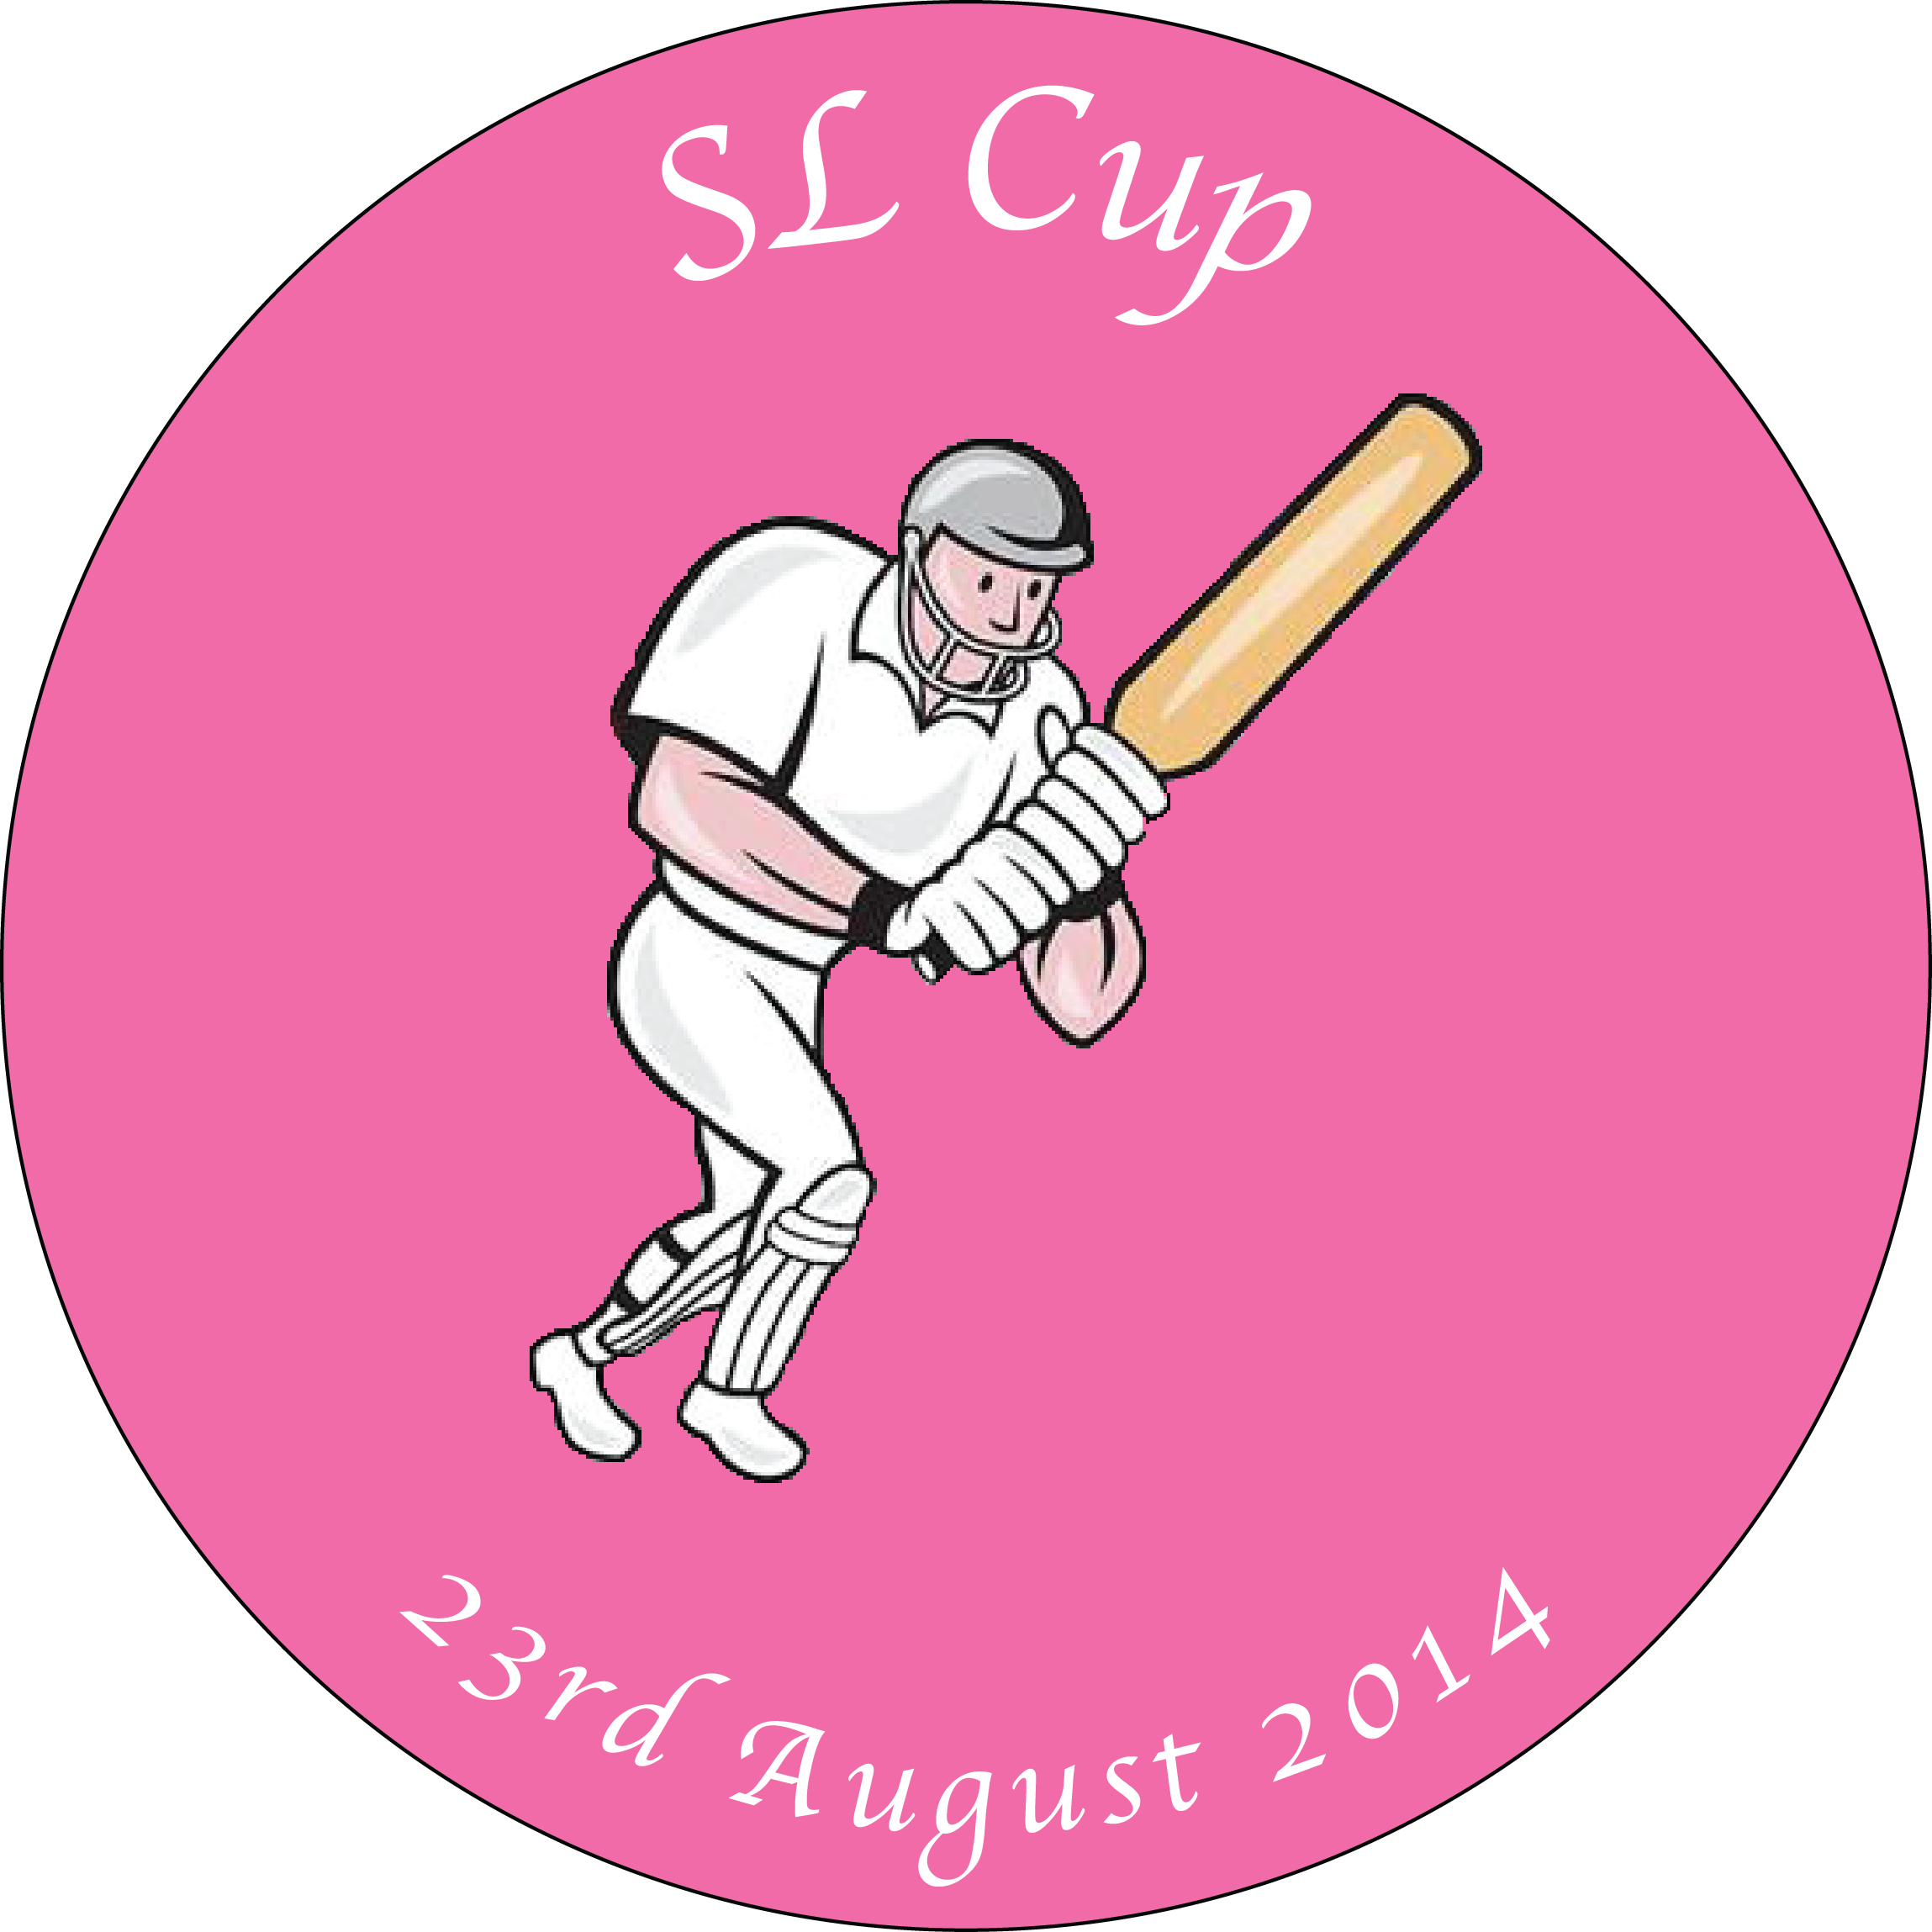 The SL Cup